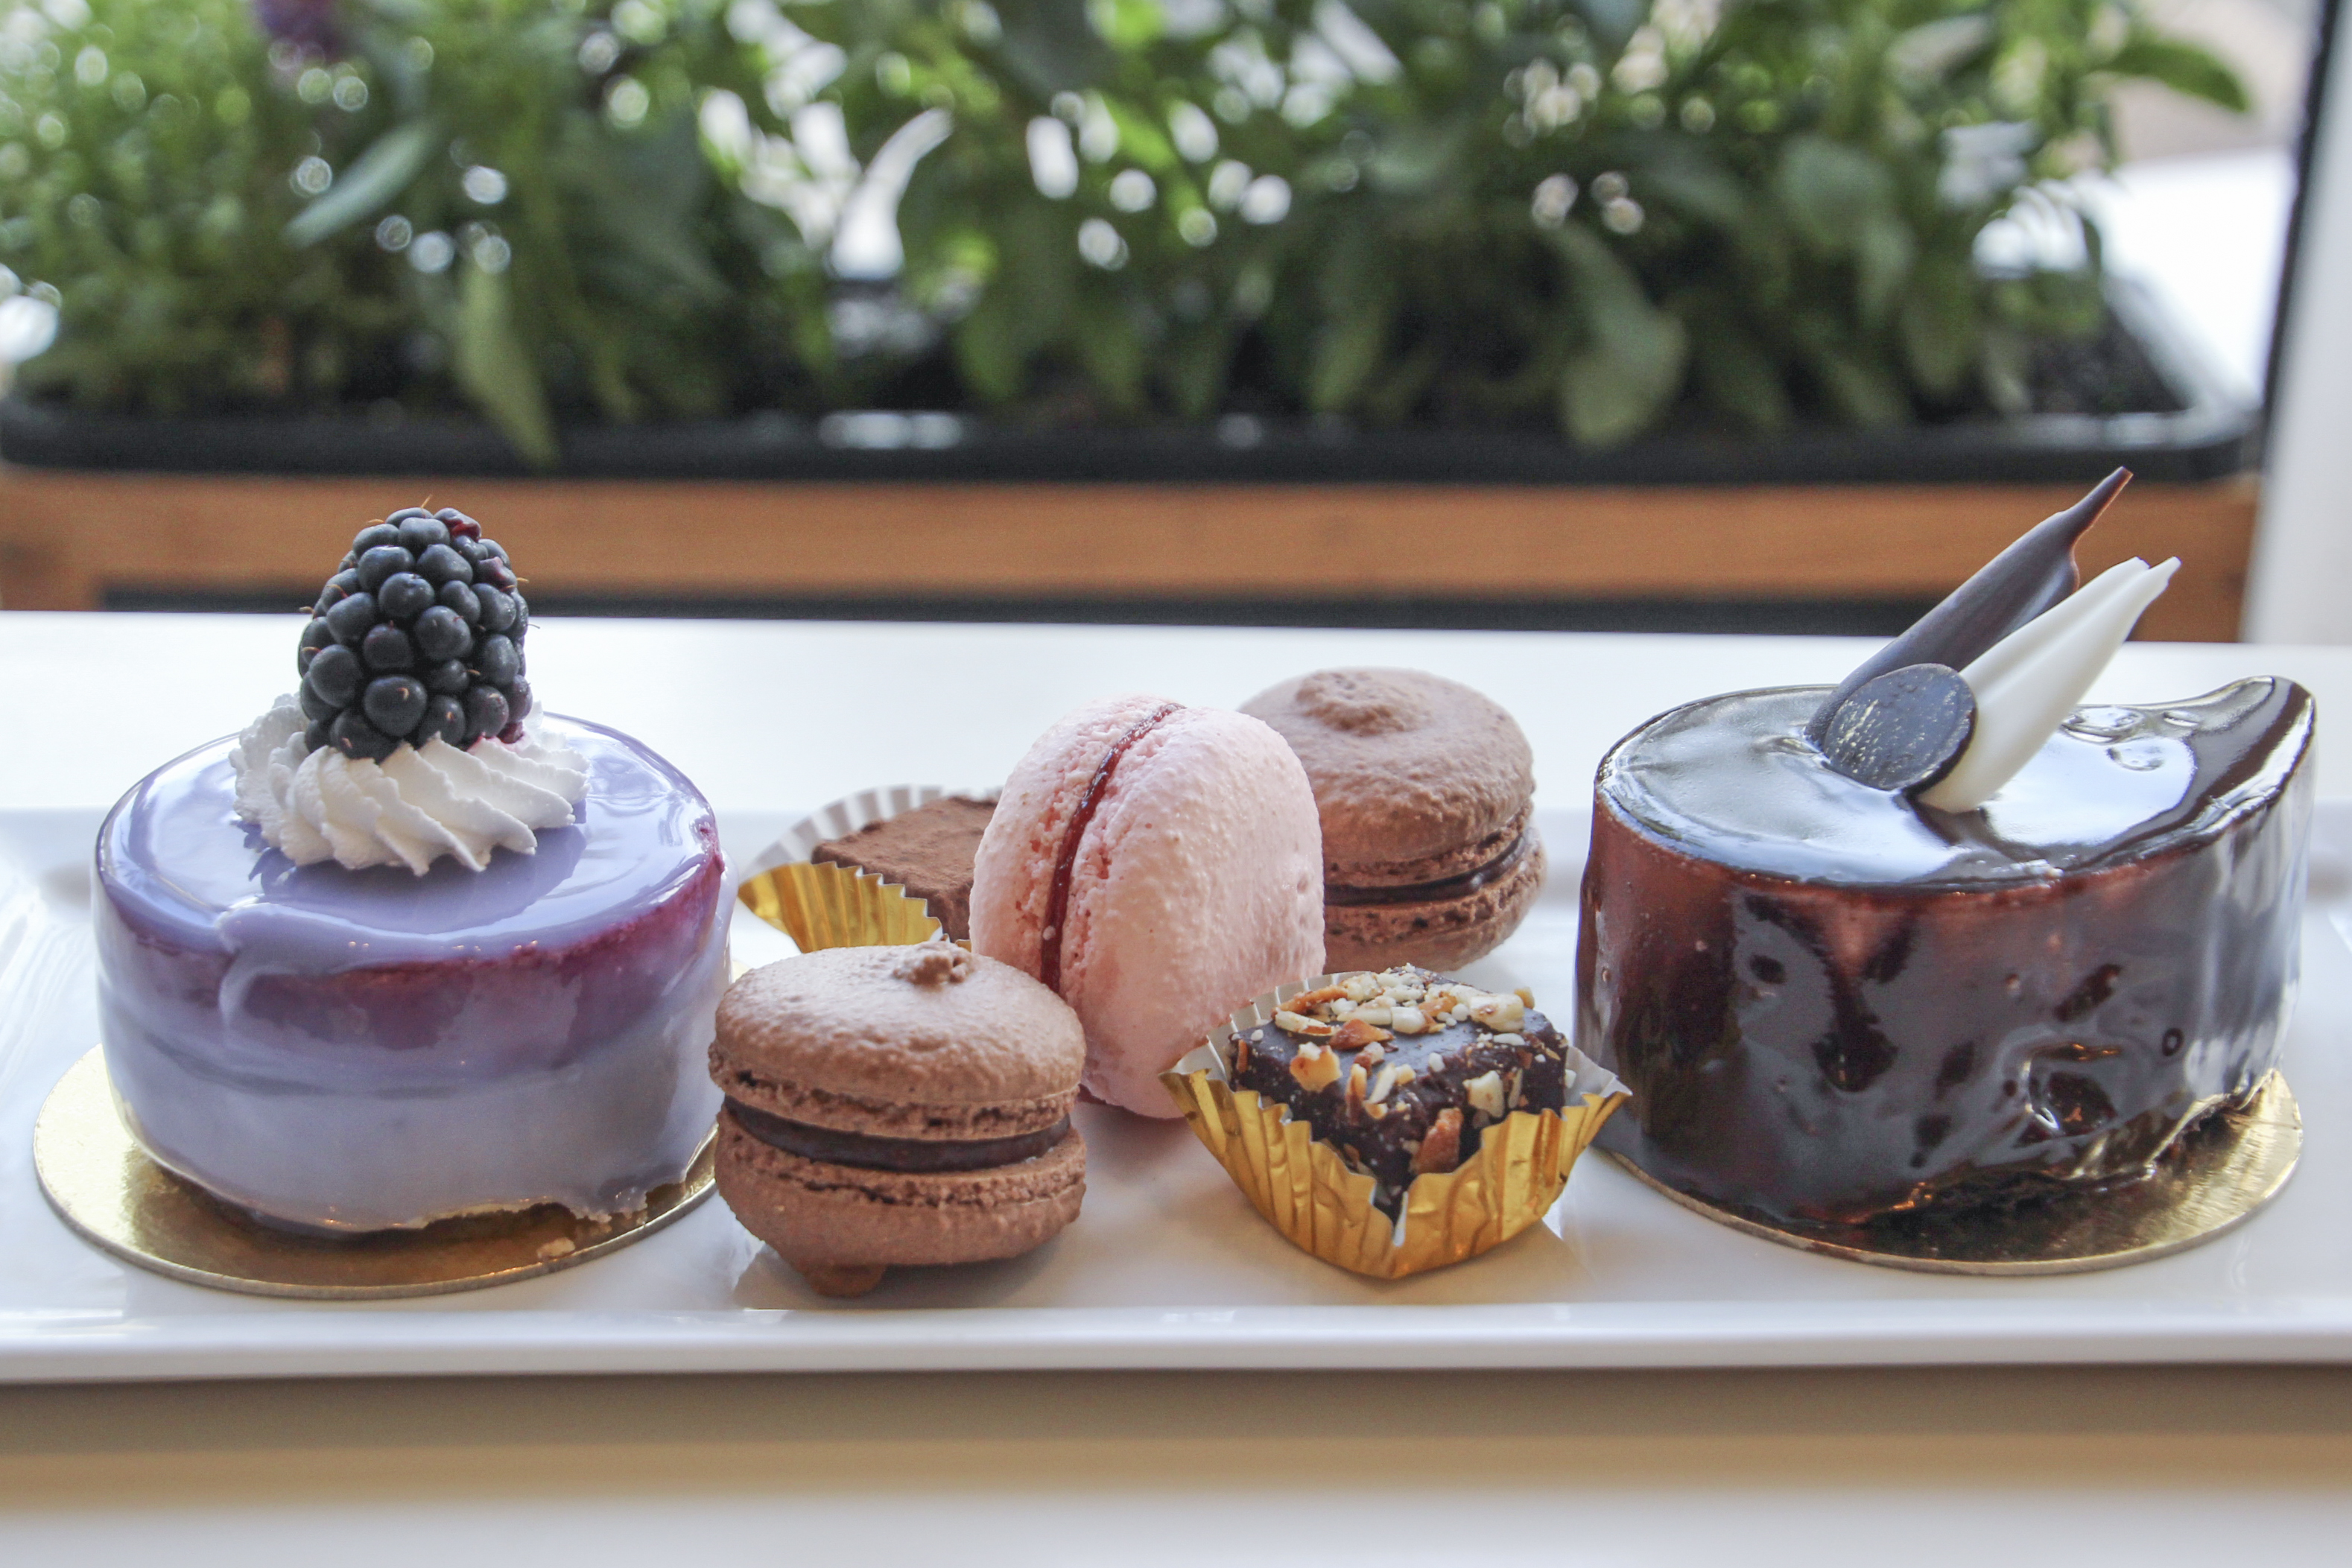 Cassis Bakery's Variety of Desserts